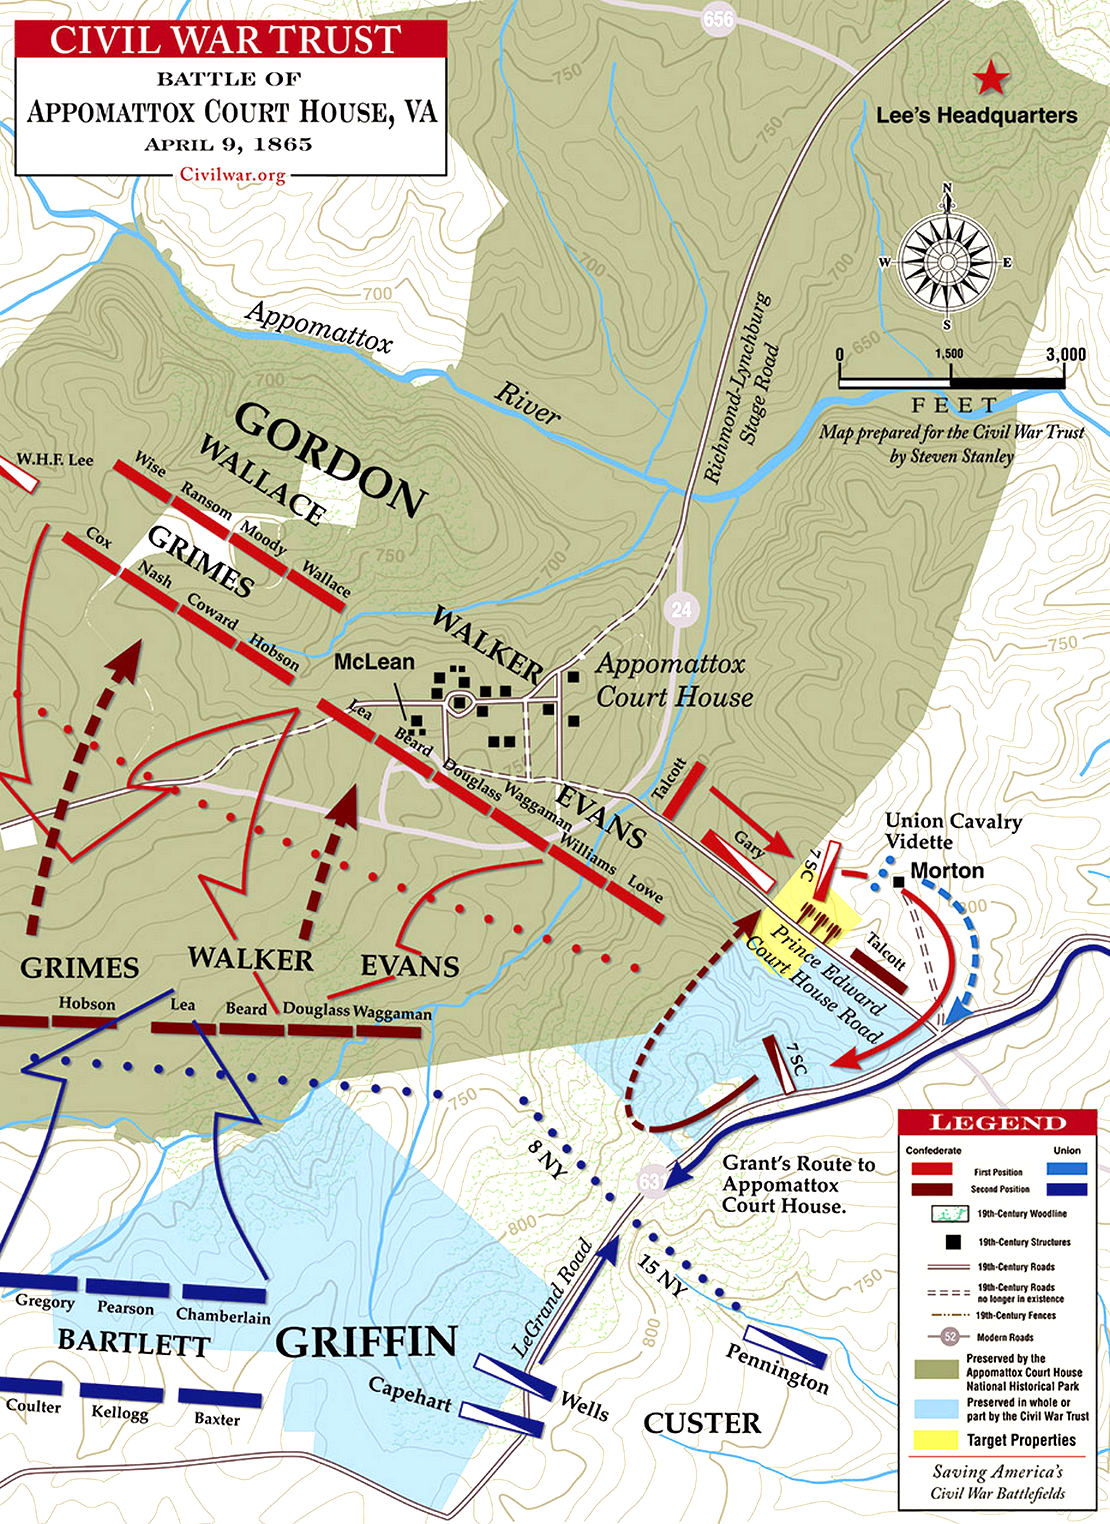 Battle of Appomattox Court House Map.jpg